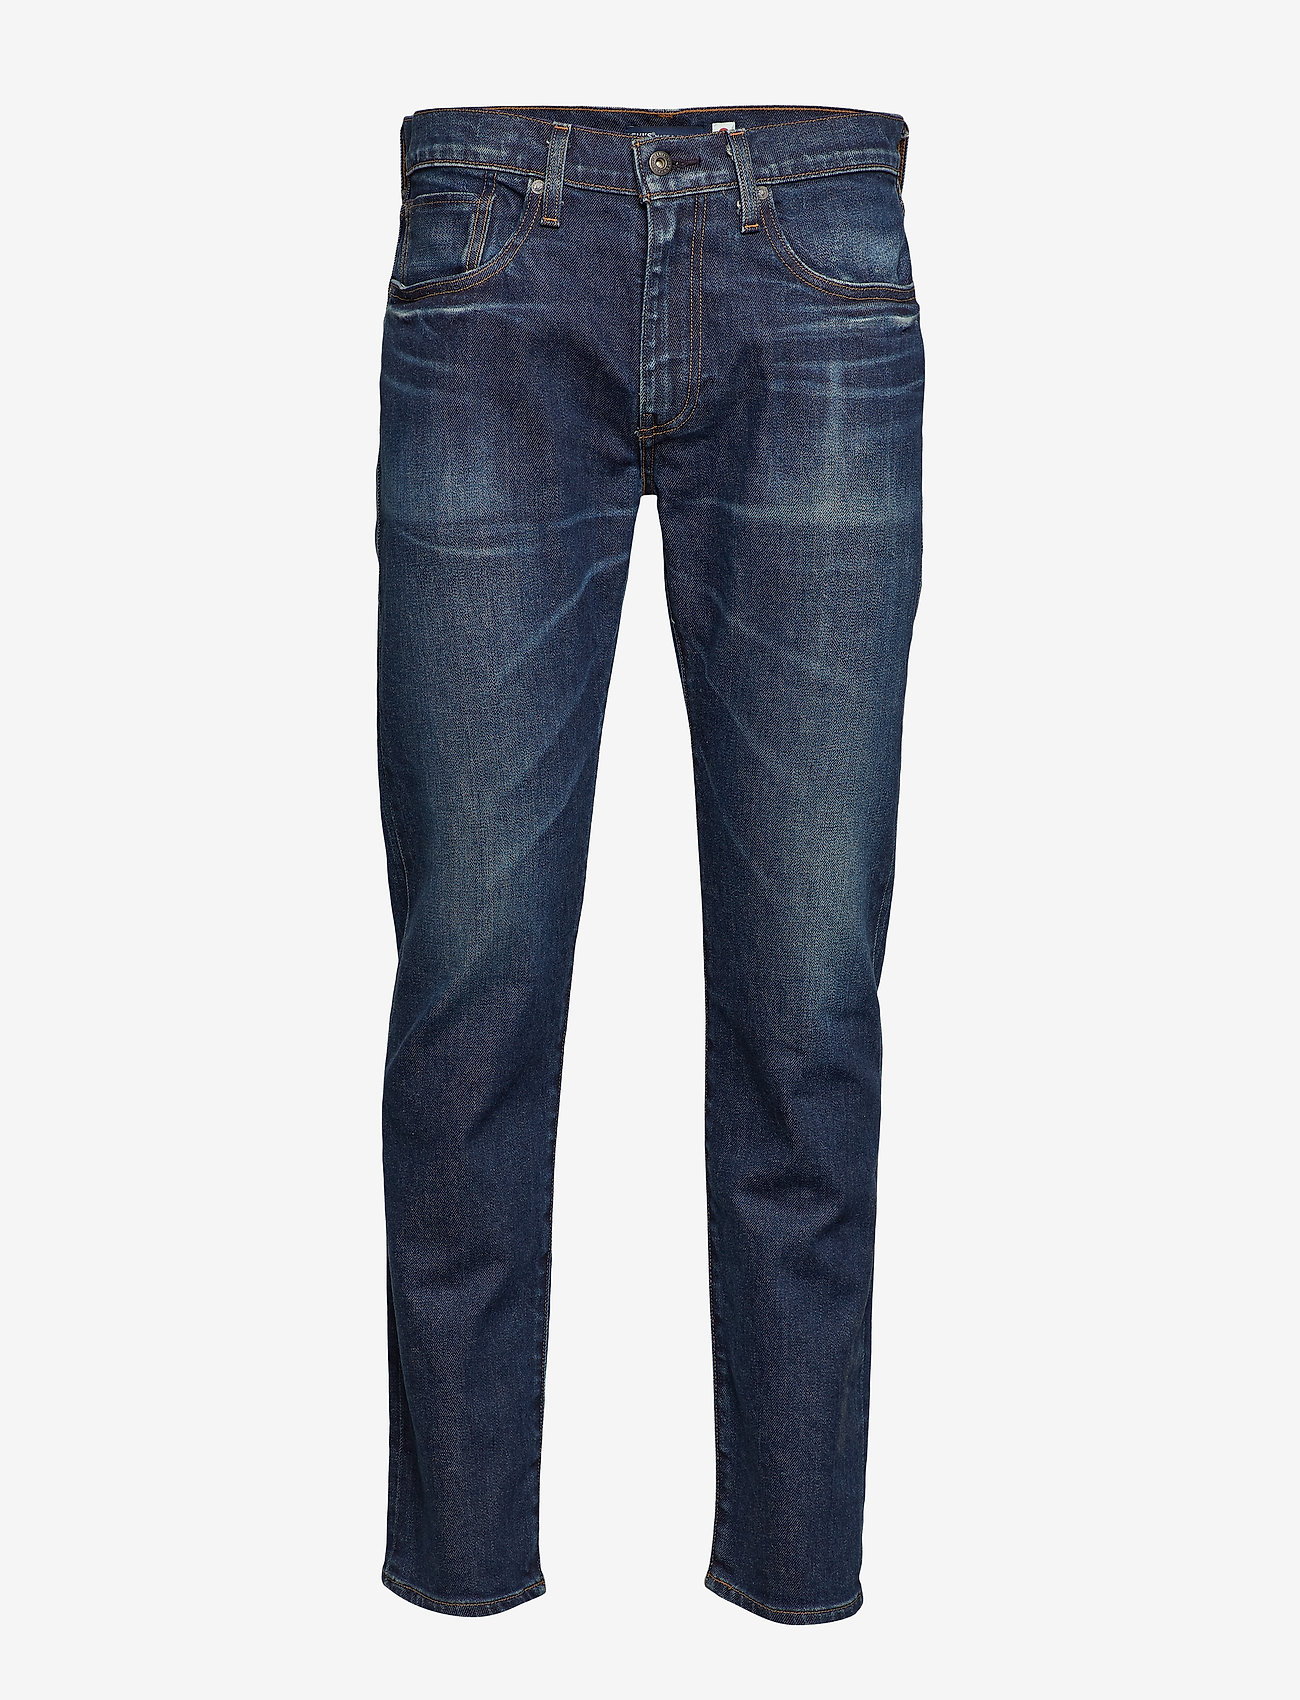 Levi's Made & Crafted - LMC 502 LMC MATSU CLEAN MIJ - slim jeans - med indigo - worn in